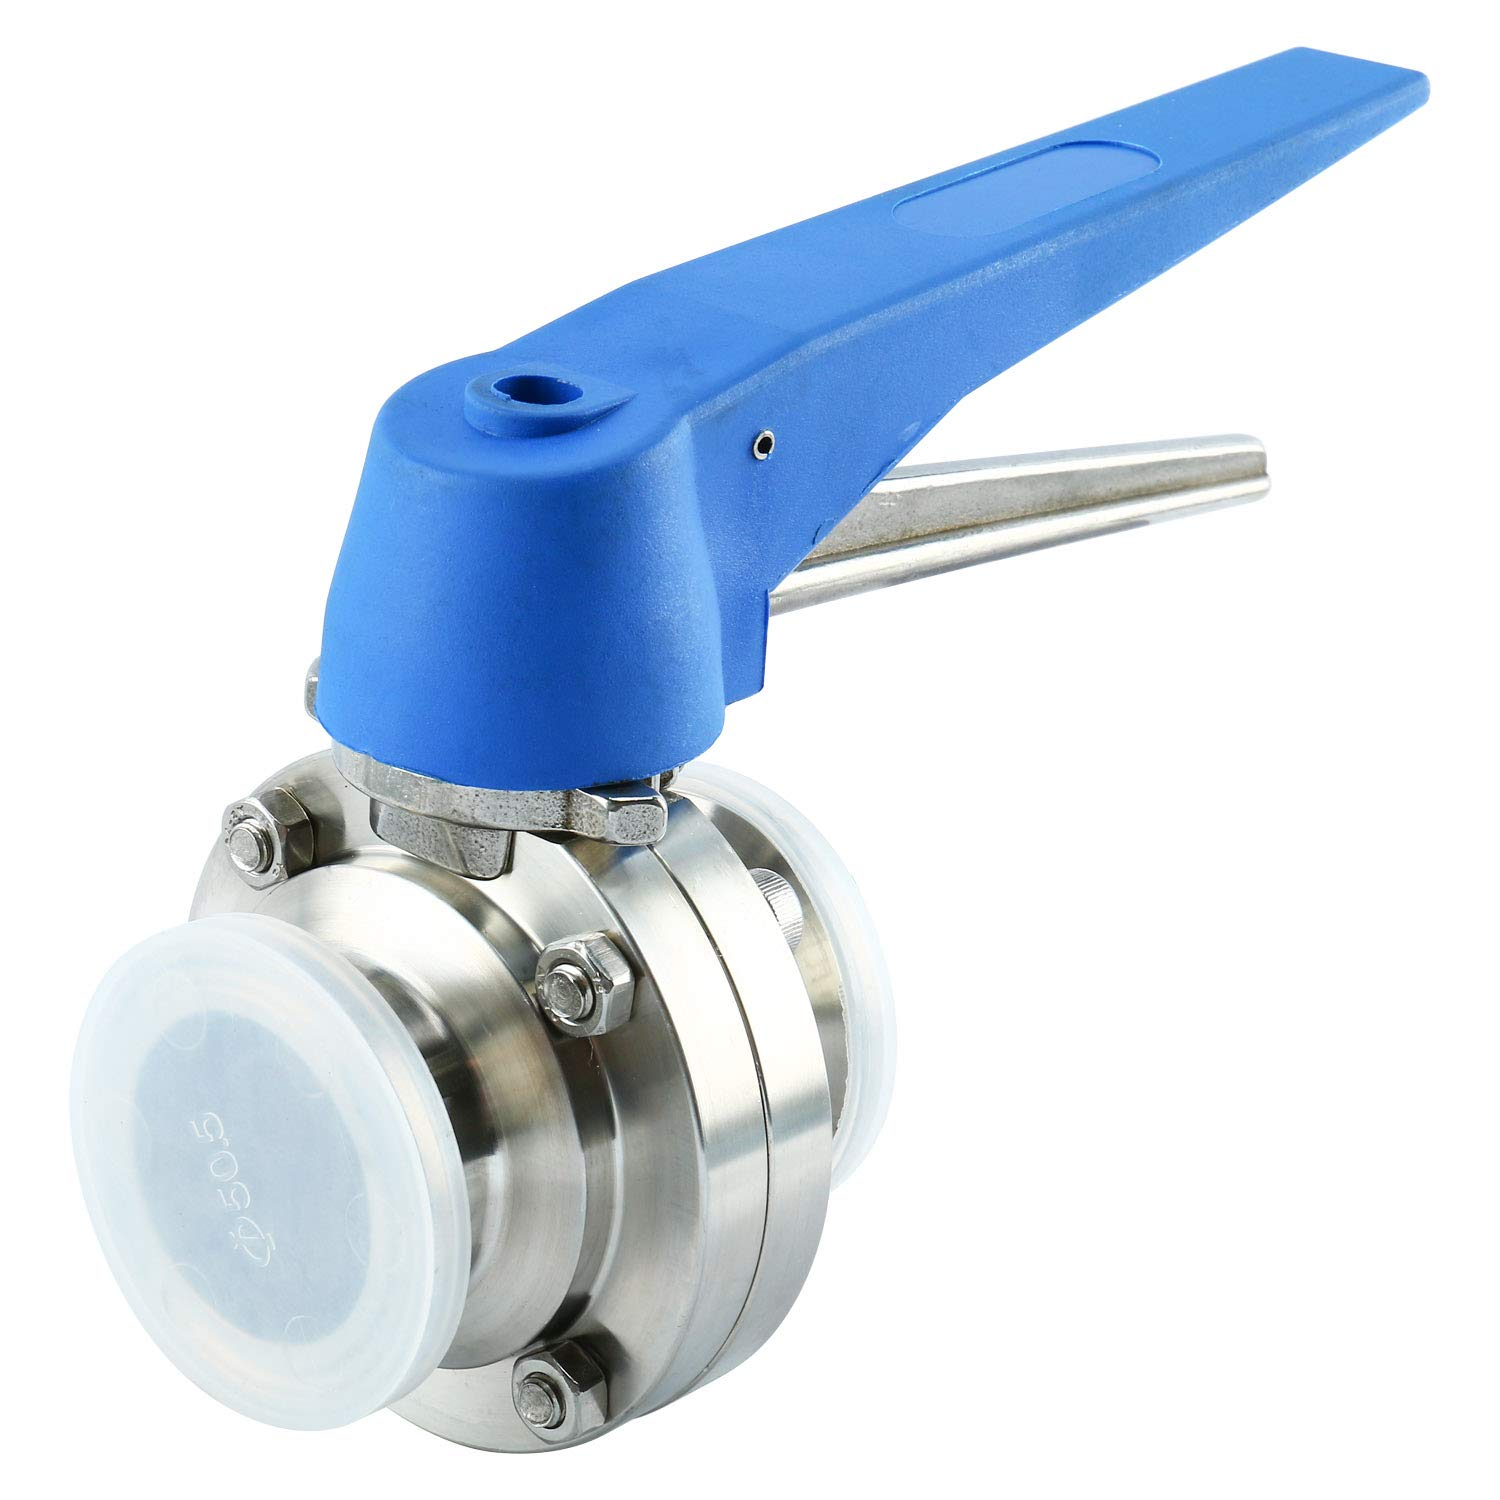 Homend 1.5'' Sanitary Tri Clamp Butterfly Valve with Trigger Handle and Silicone Seal, Stainless Steel 304 (1.5'' OD:38.1MM; Ferrule Size : 50.5MM)